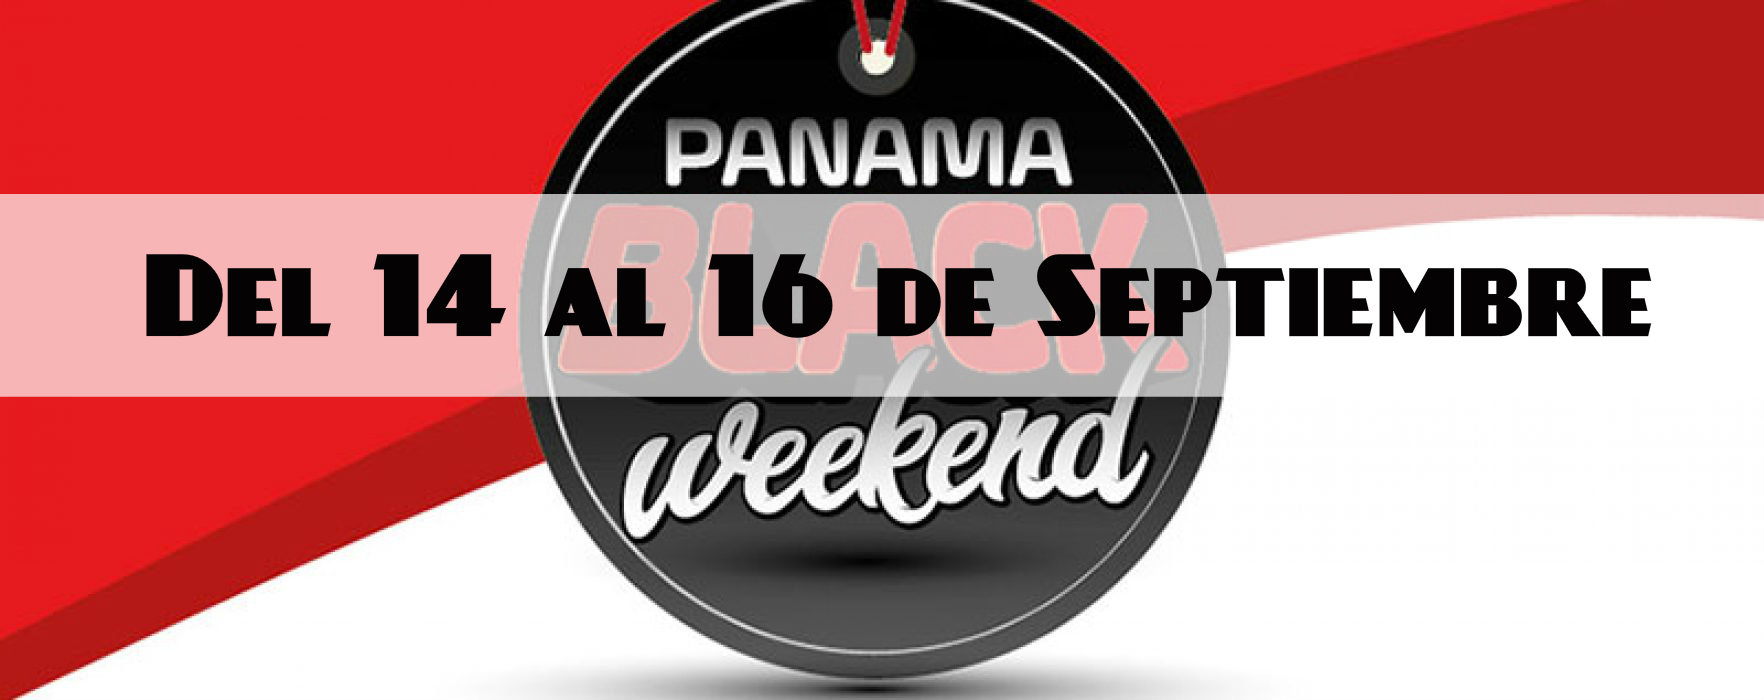 Black Weekend 2018 panama